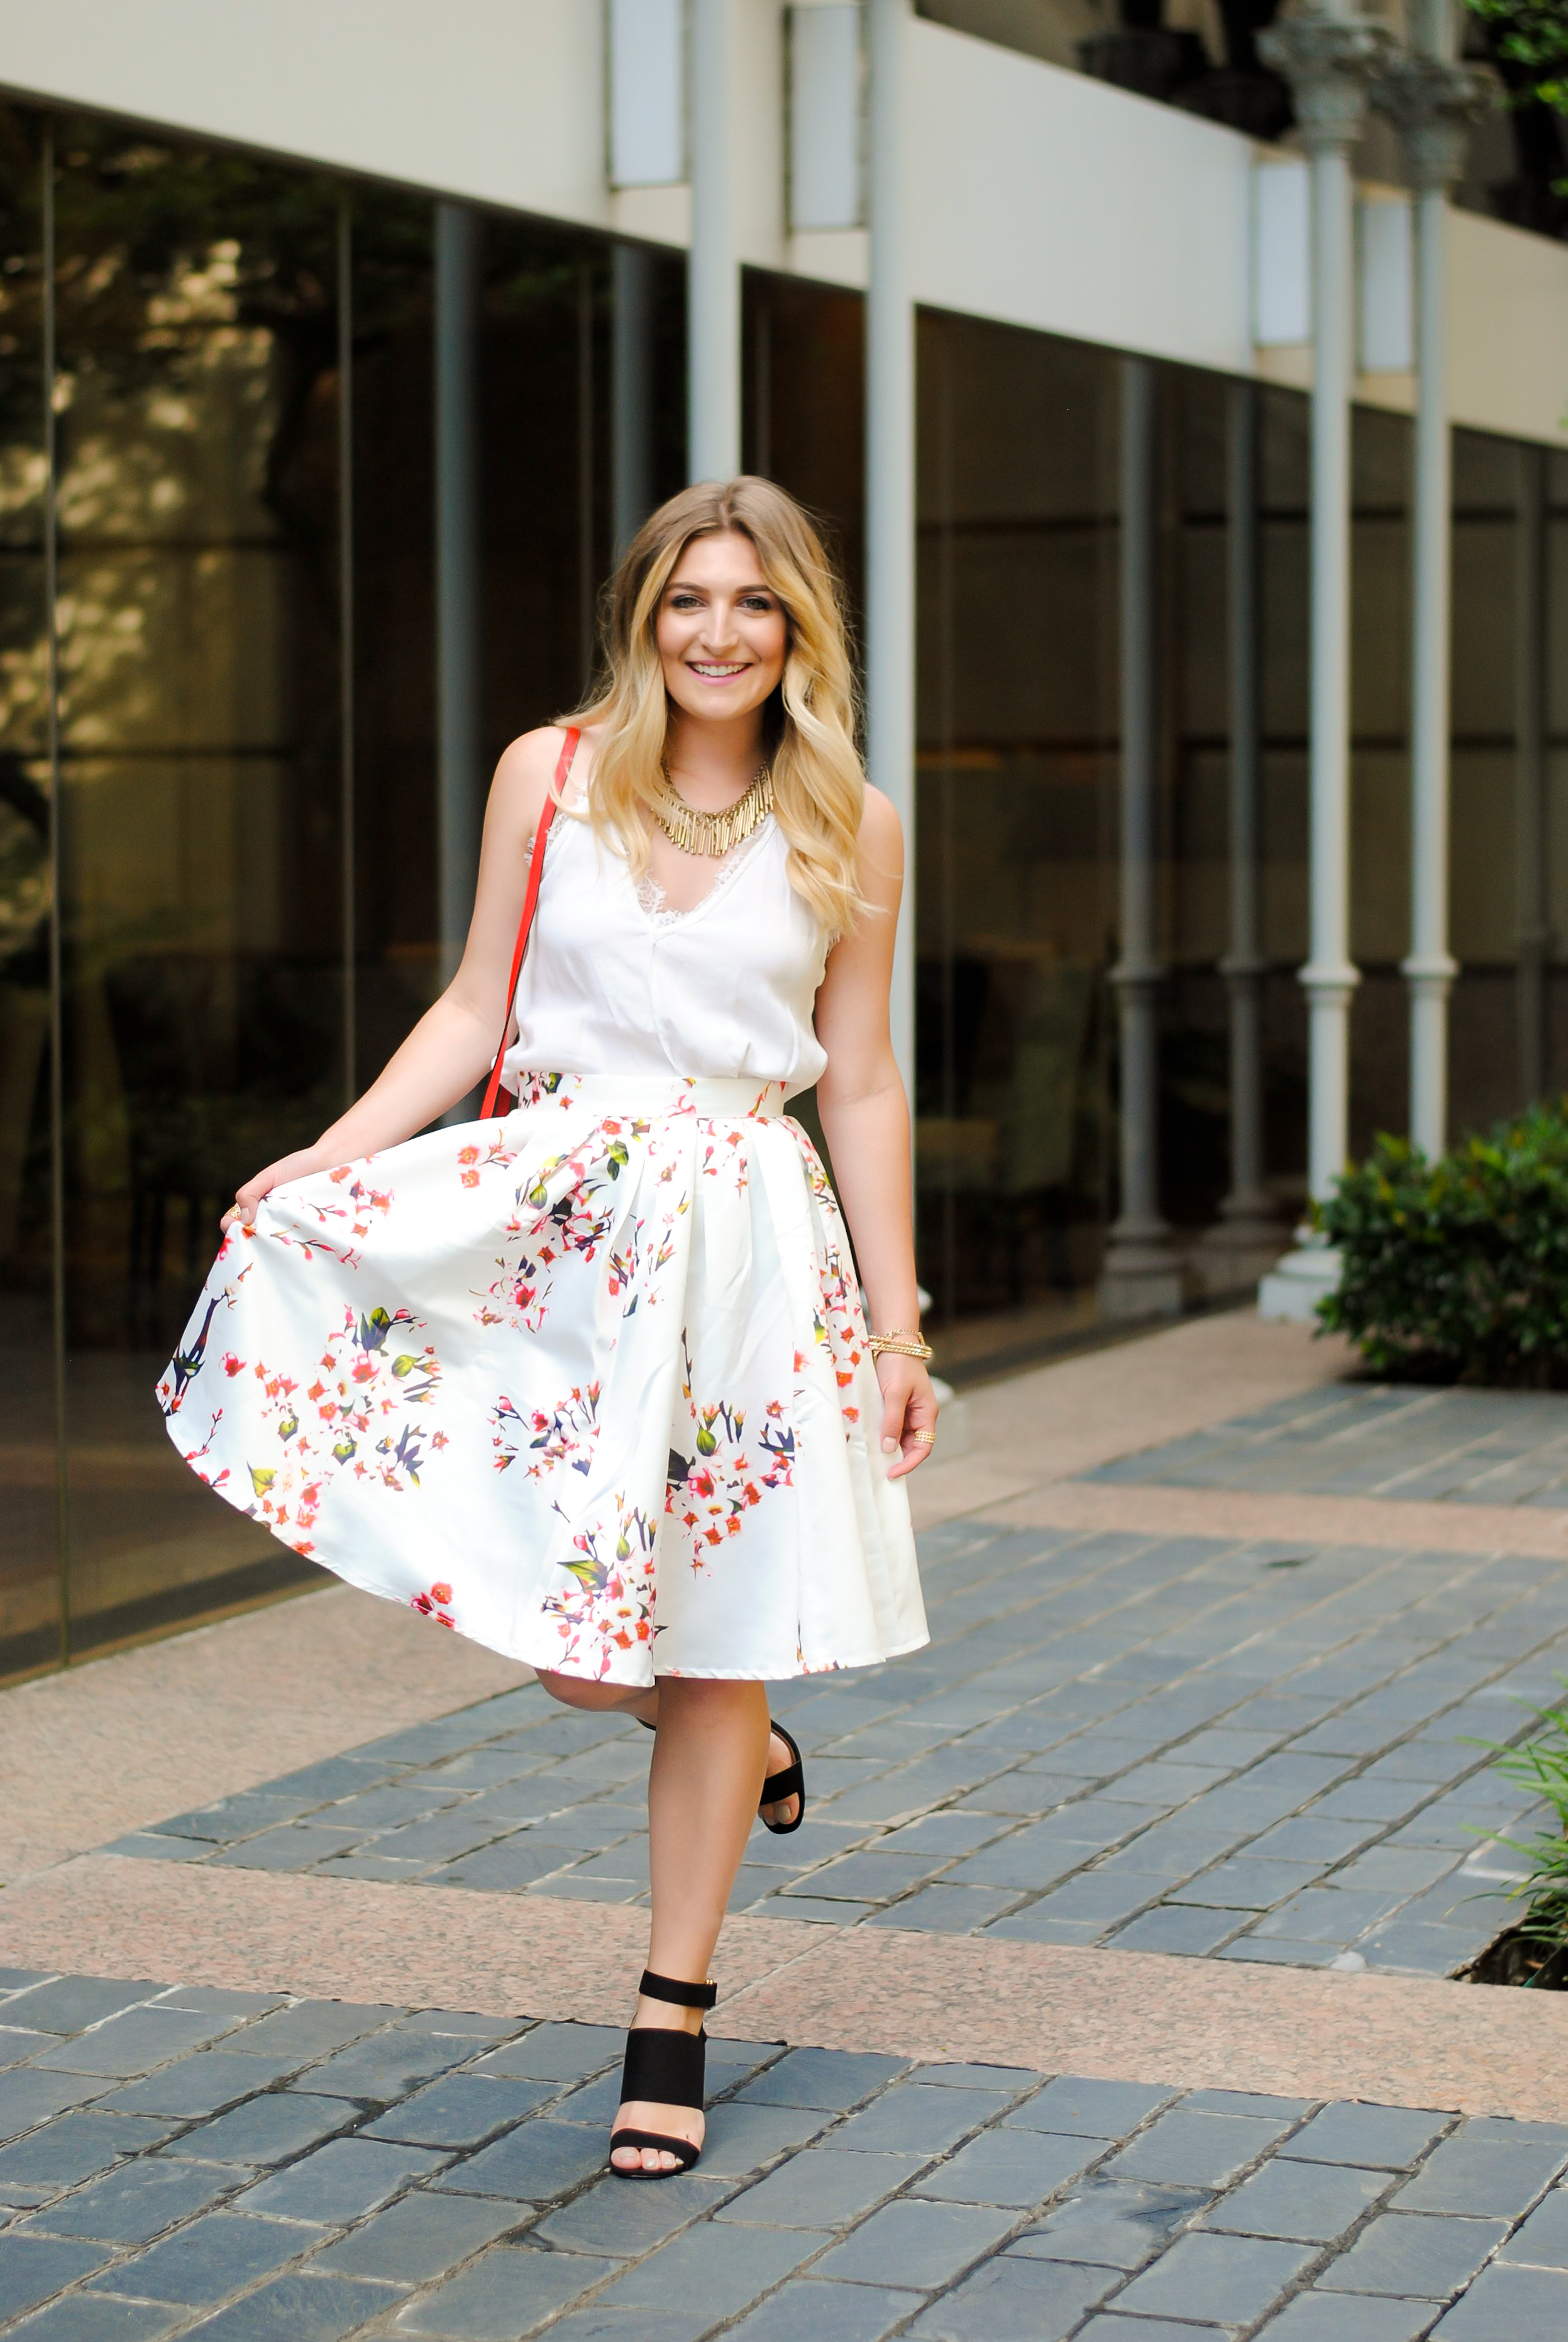 girly feminine look with SheIn | Audrey Madison Stowe Blog